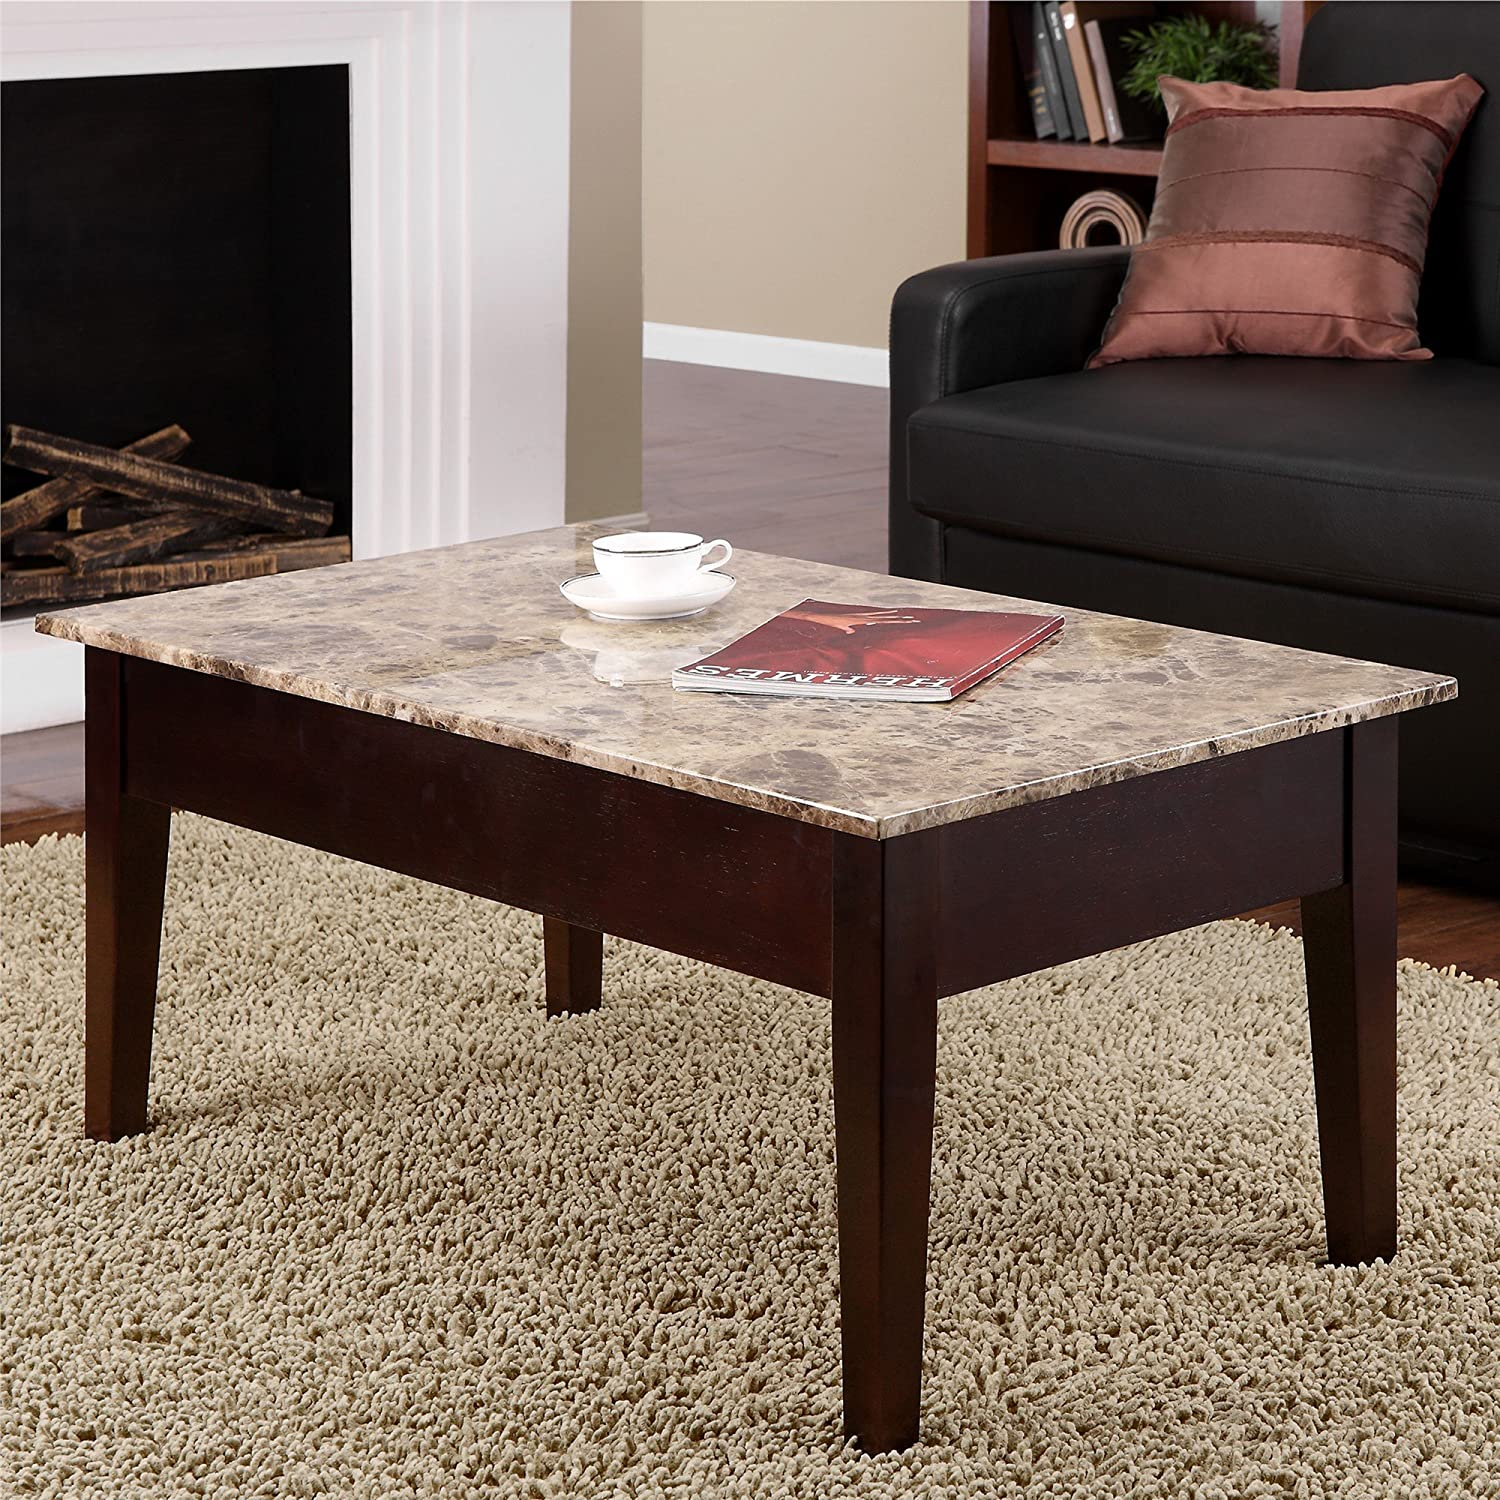 white prairie mmh black tema top table marble coffee legs